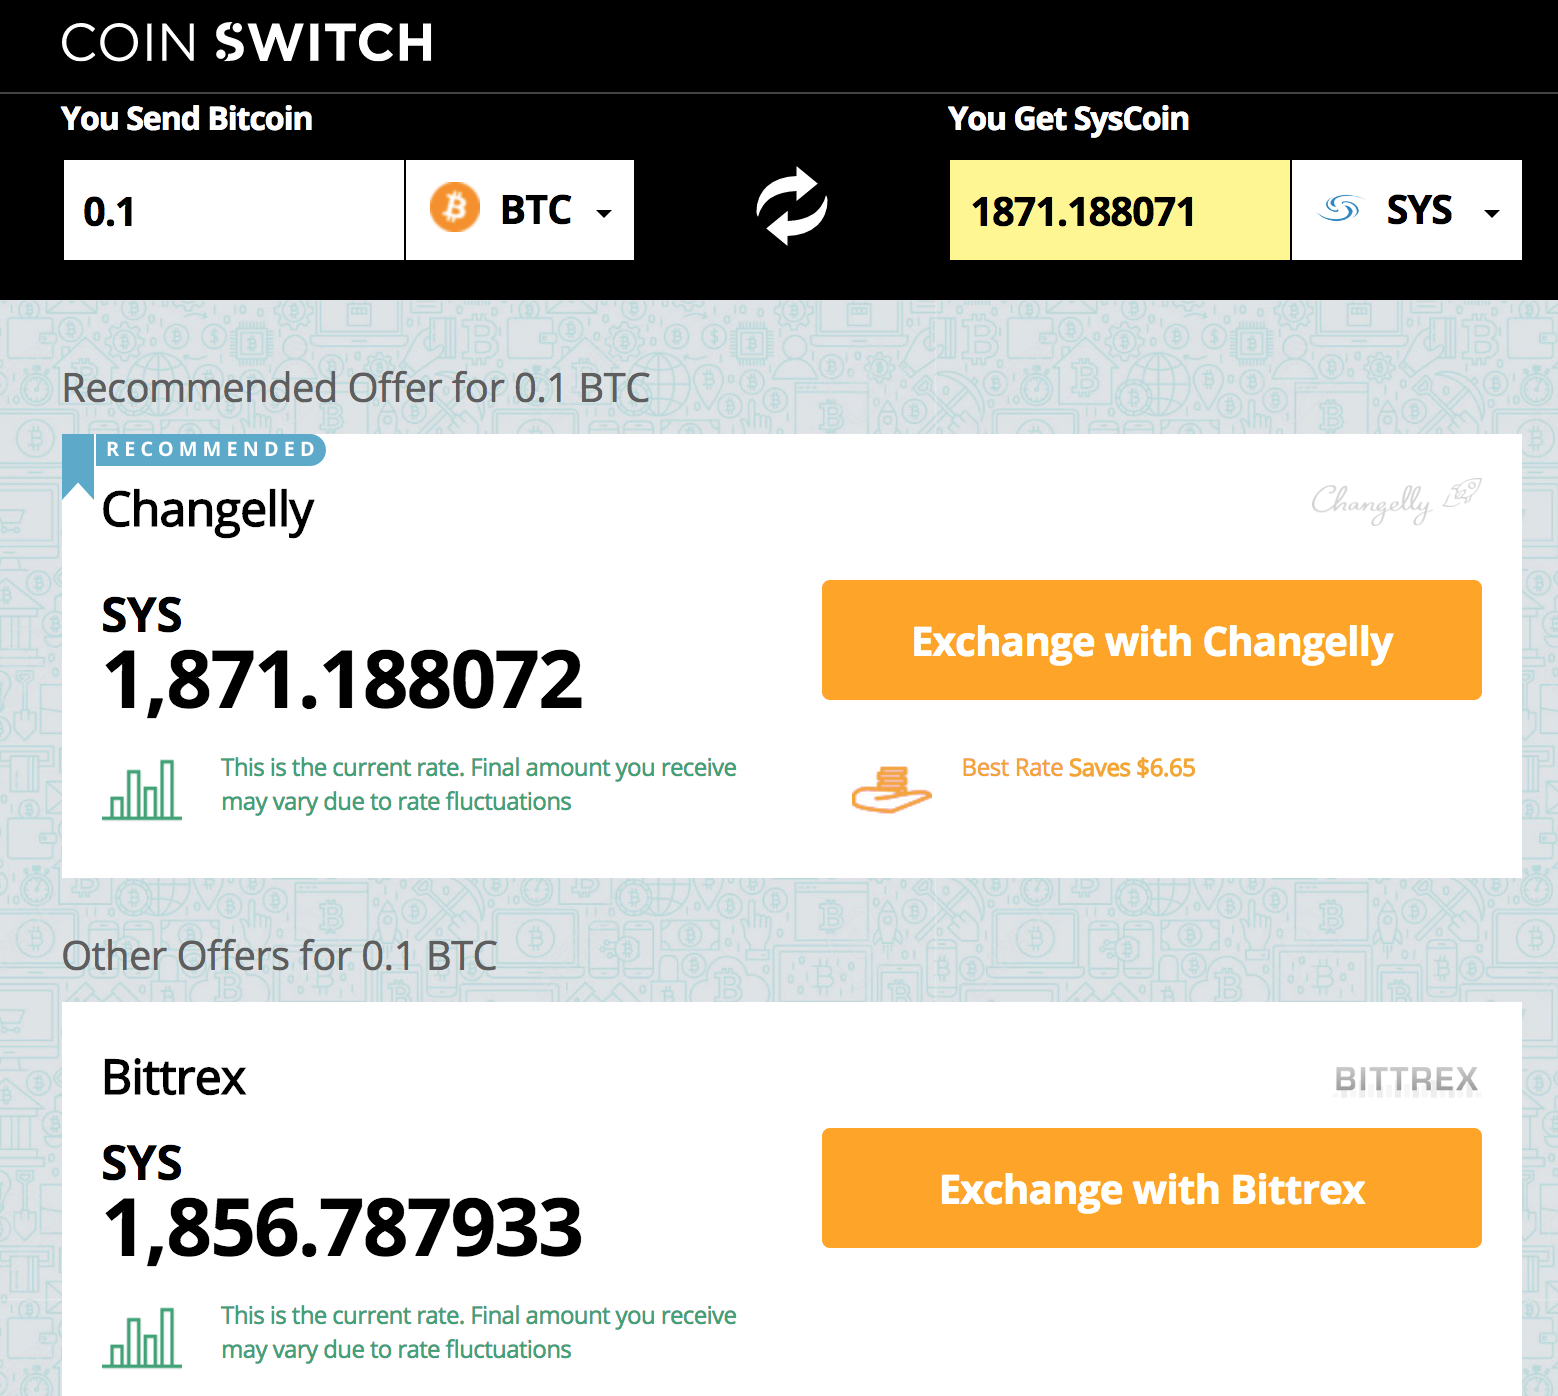 How To Syscoin Sys On Coinswitch